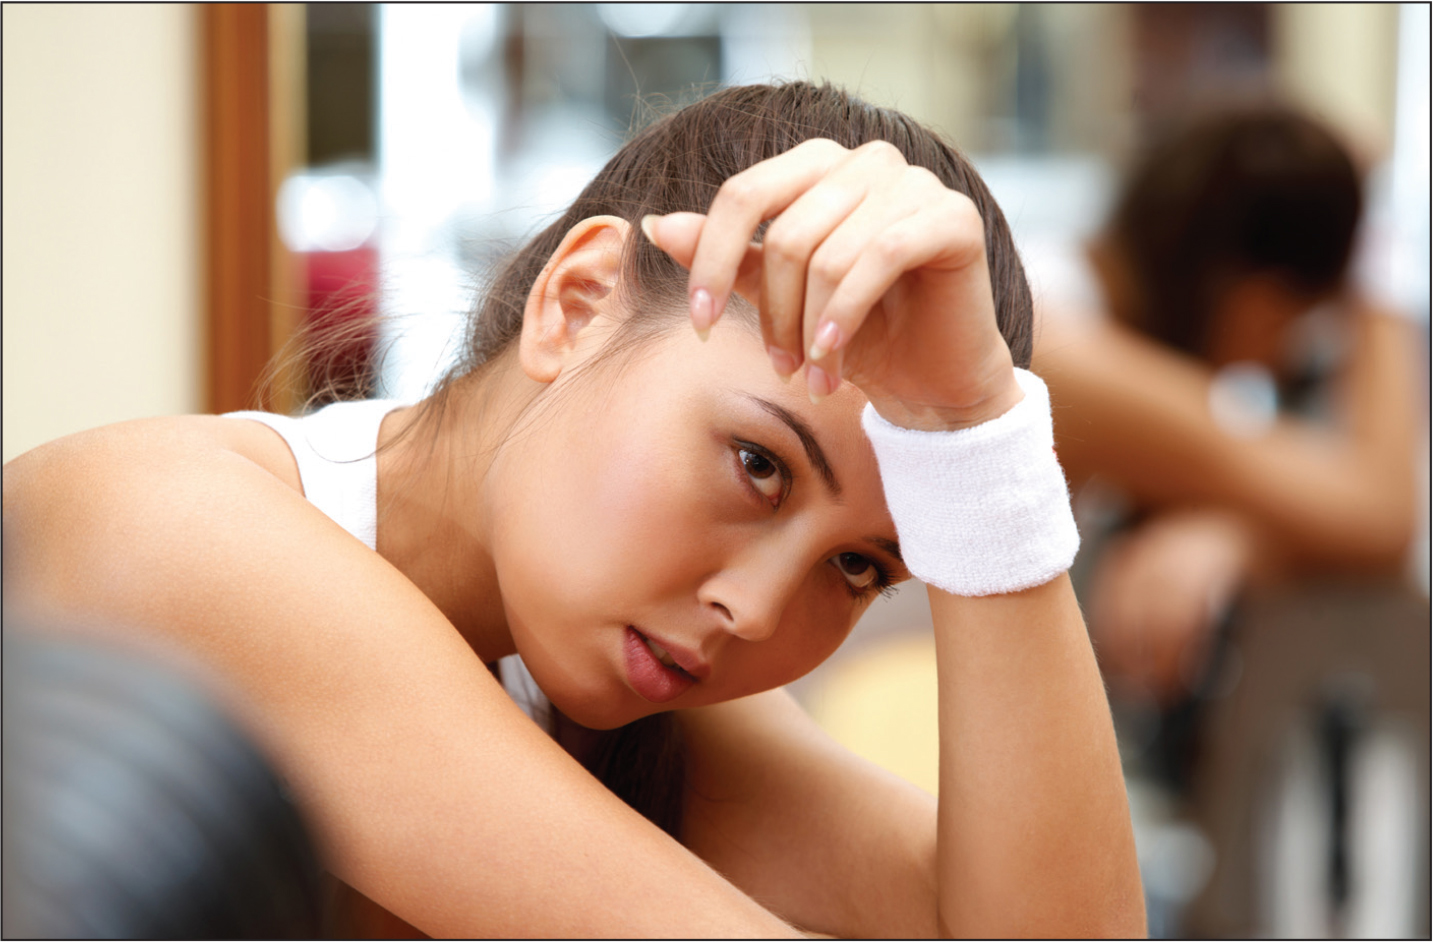 A teenage girl looking tired.© Shutterstock